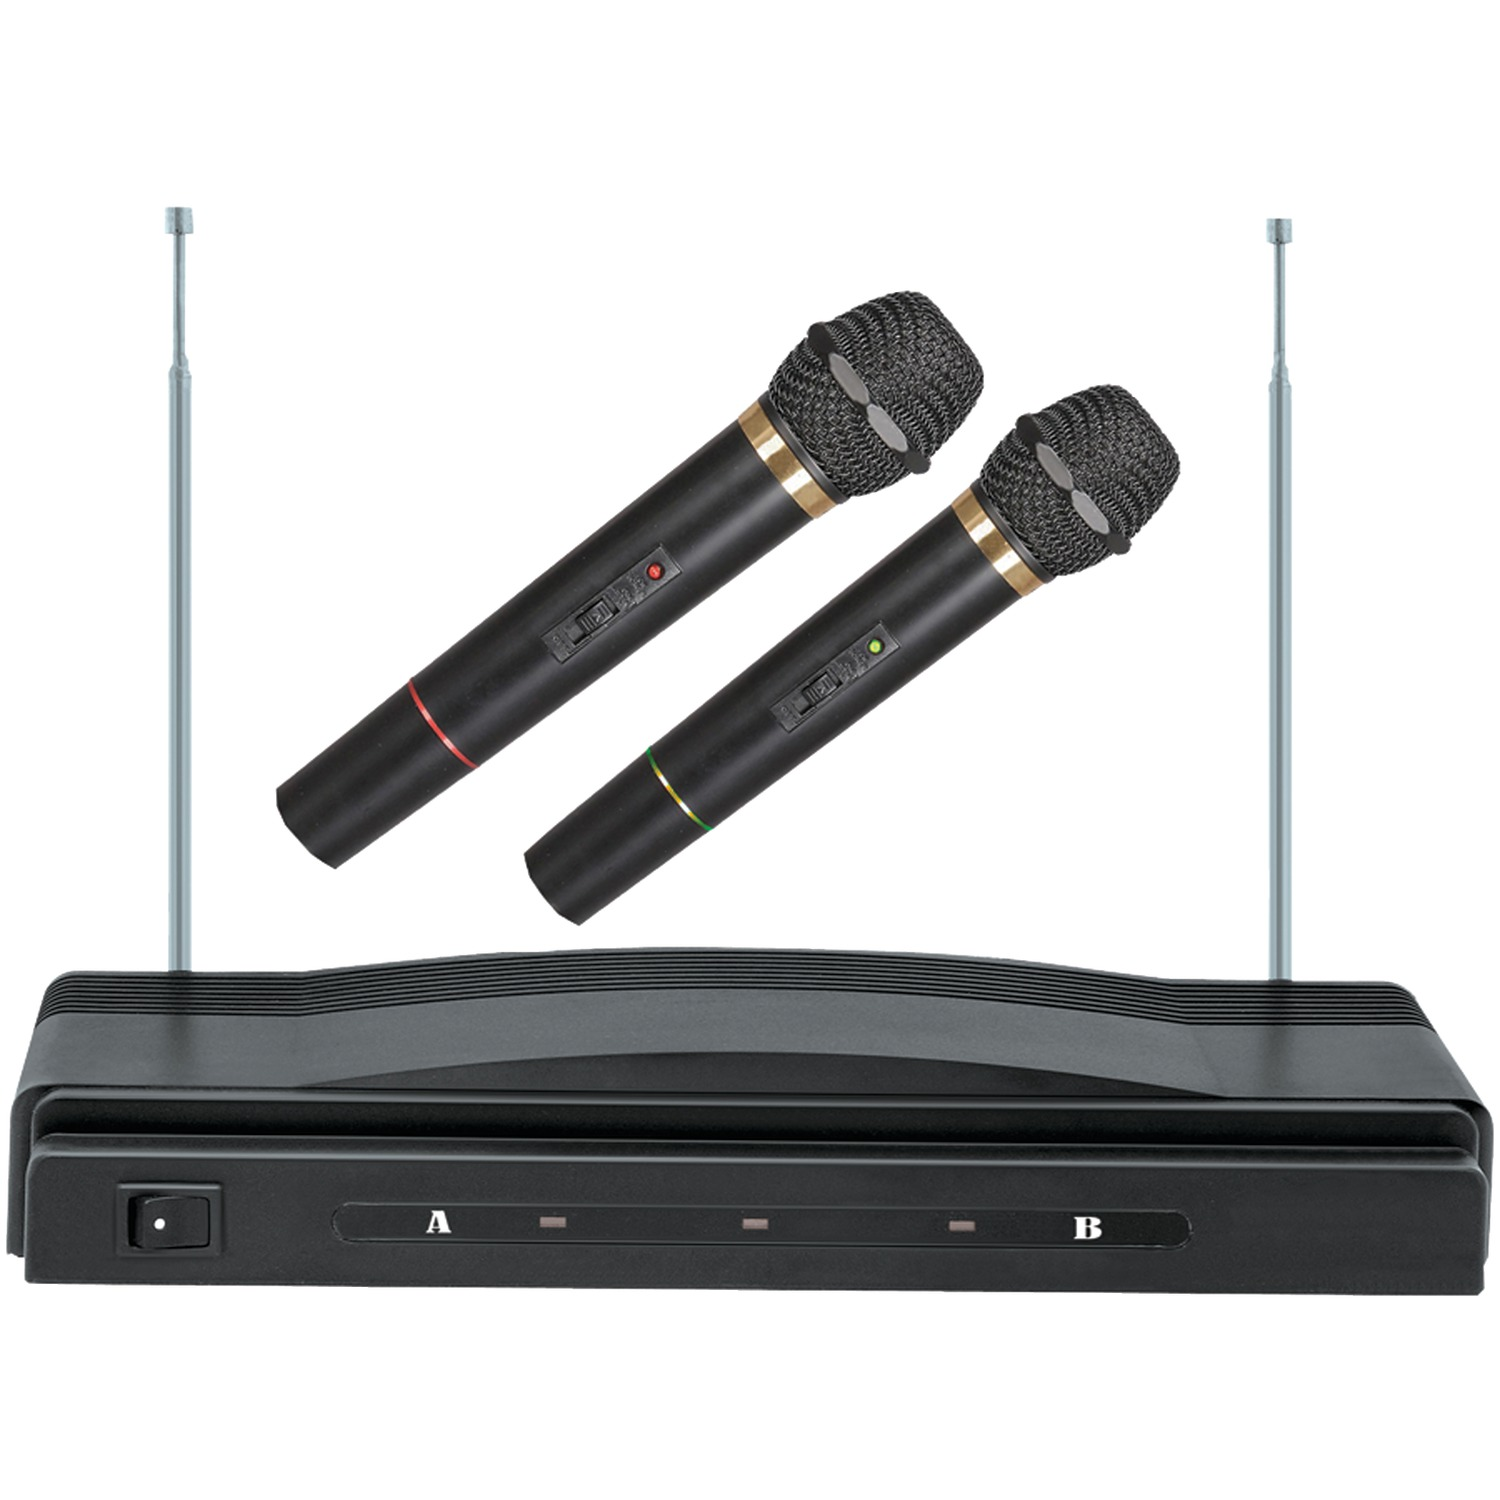 Supersonic SC-900 Professional Dual Wireless Microphone System